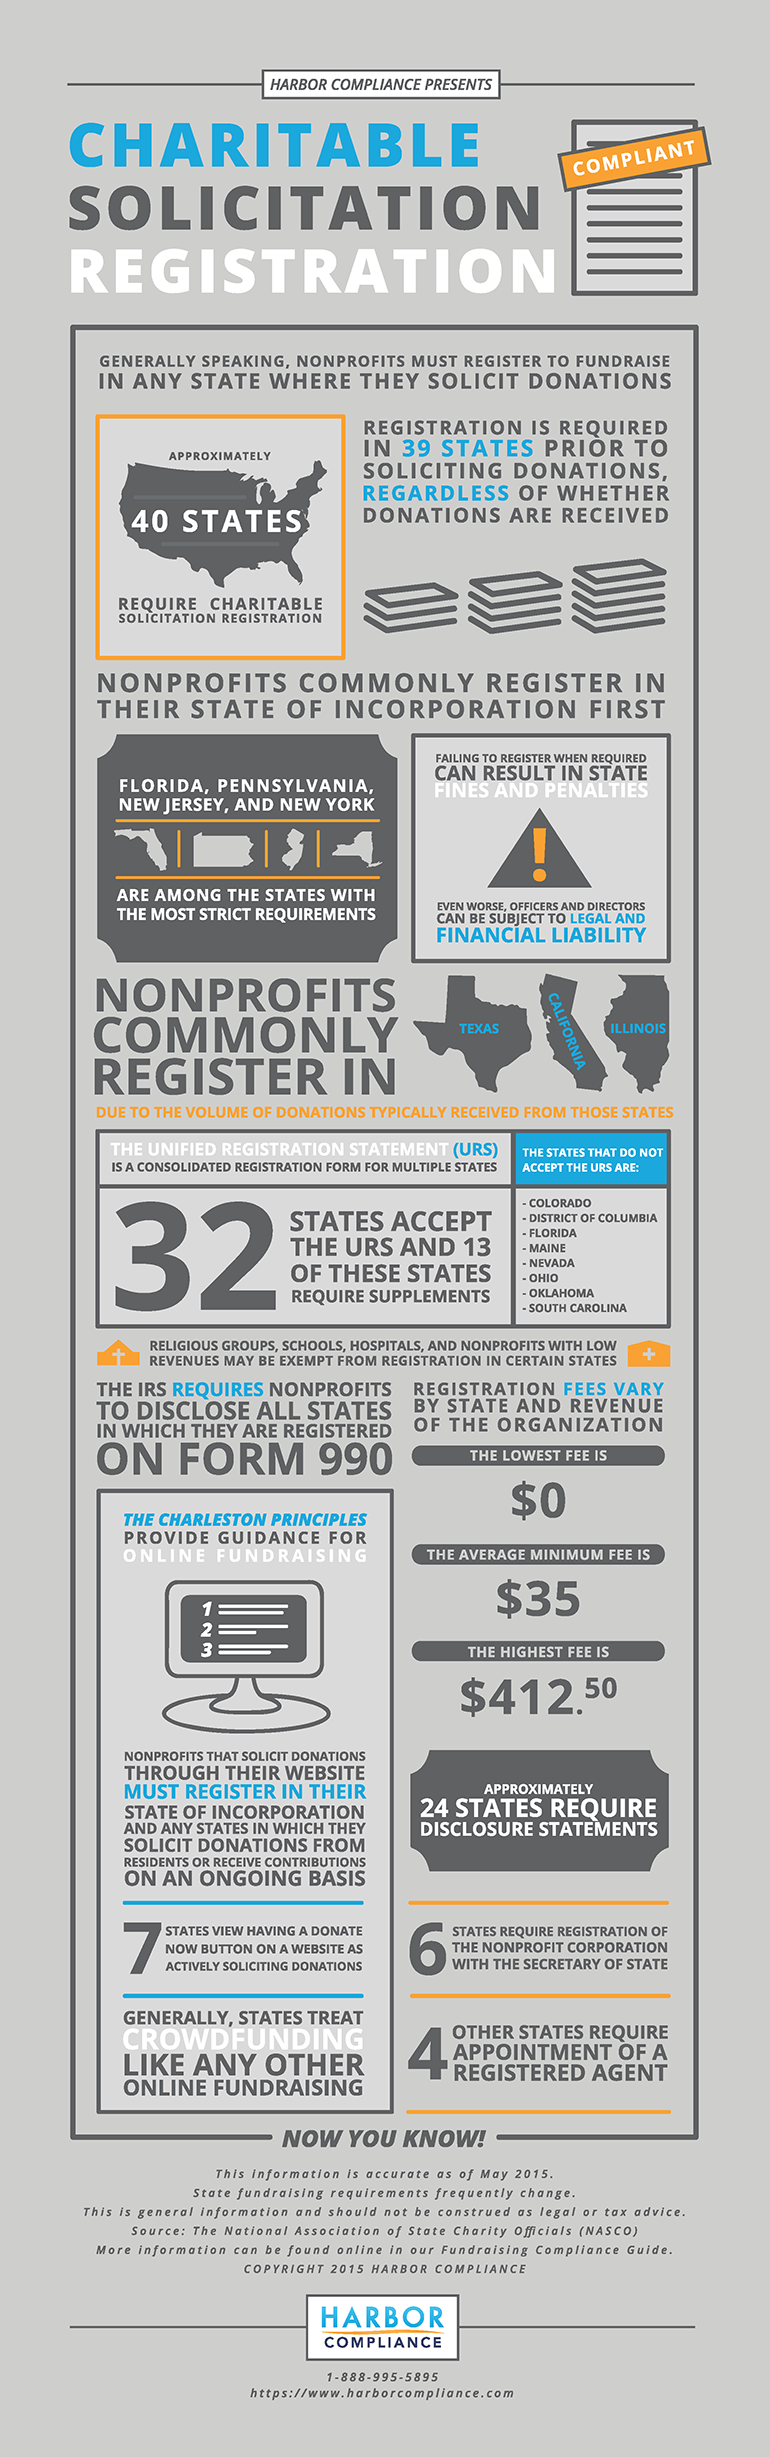 charitable-solicitation-registration-infographic